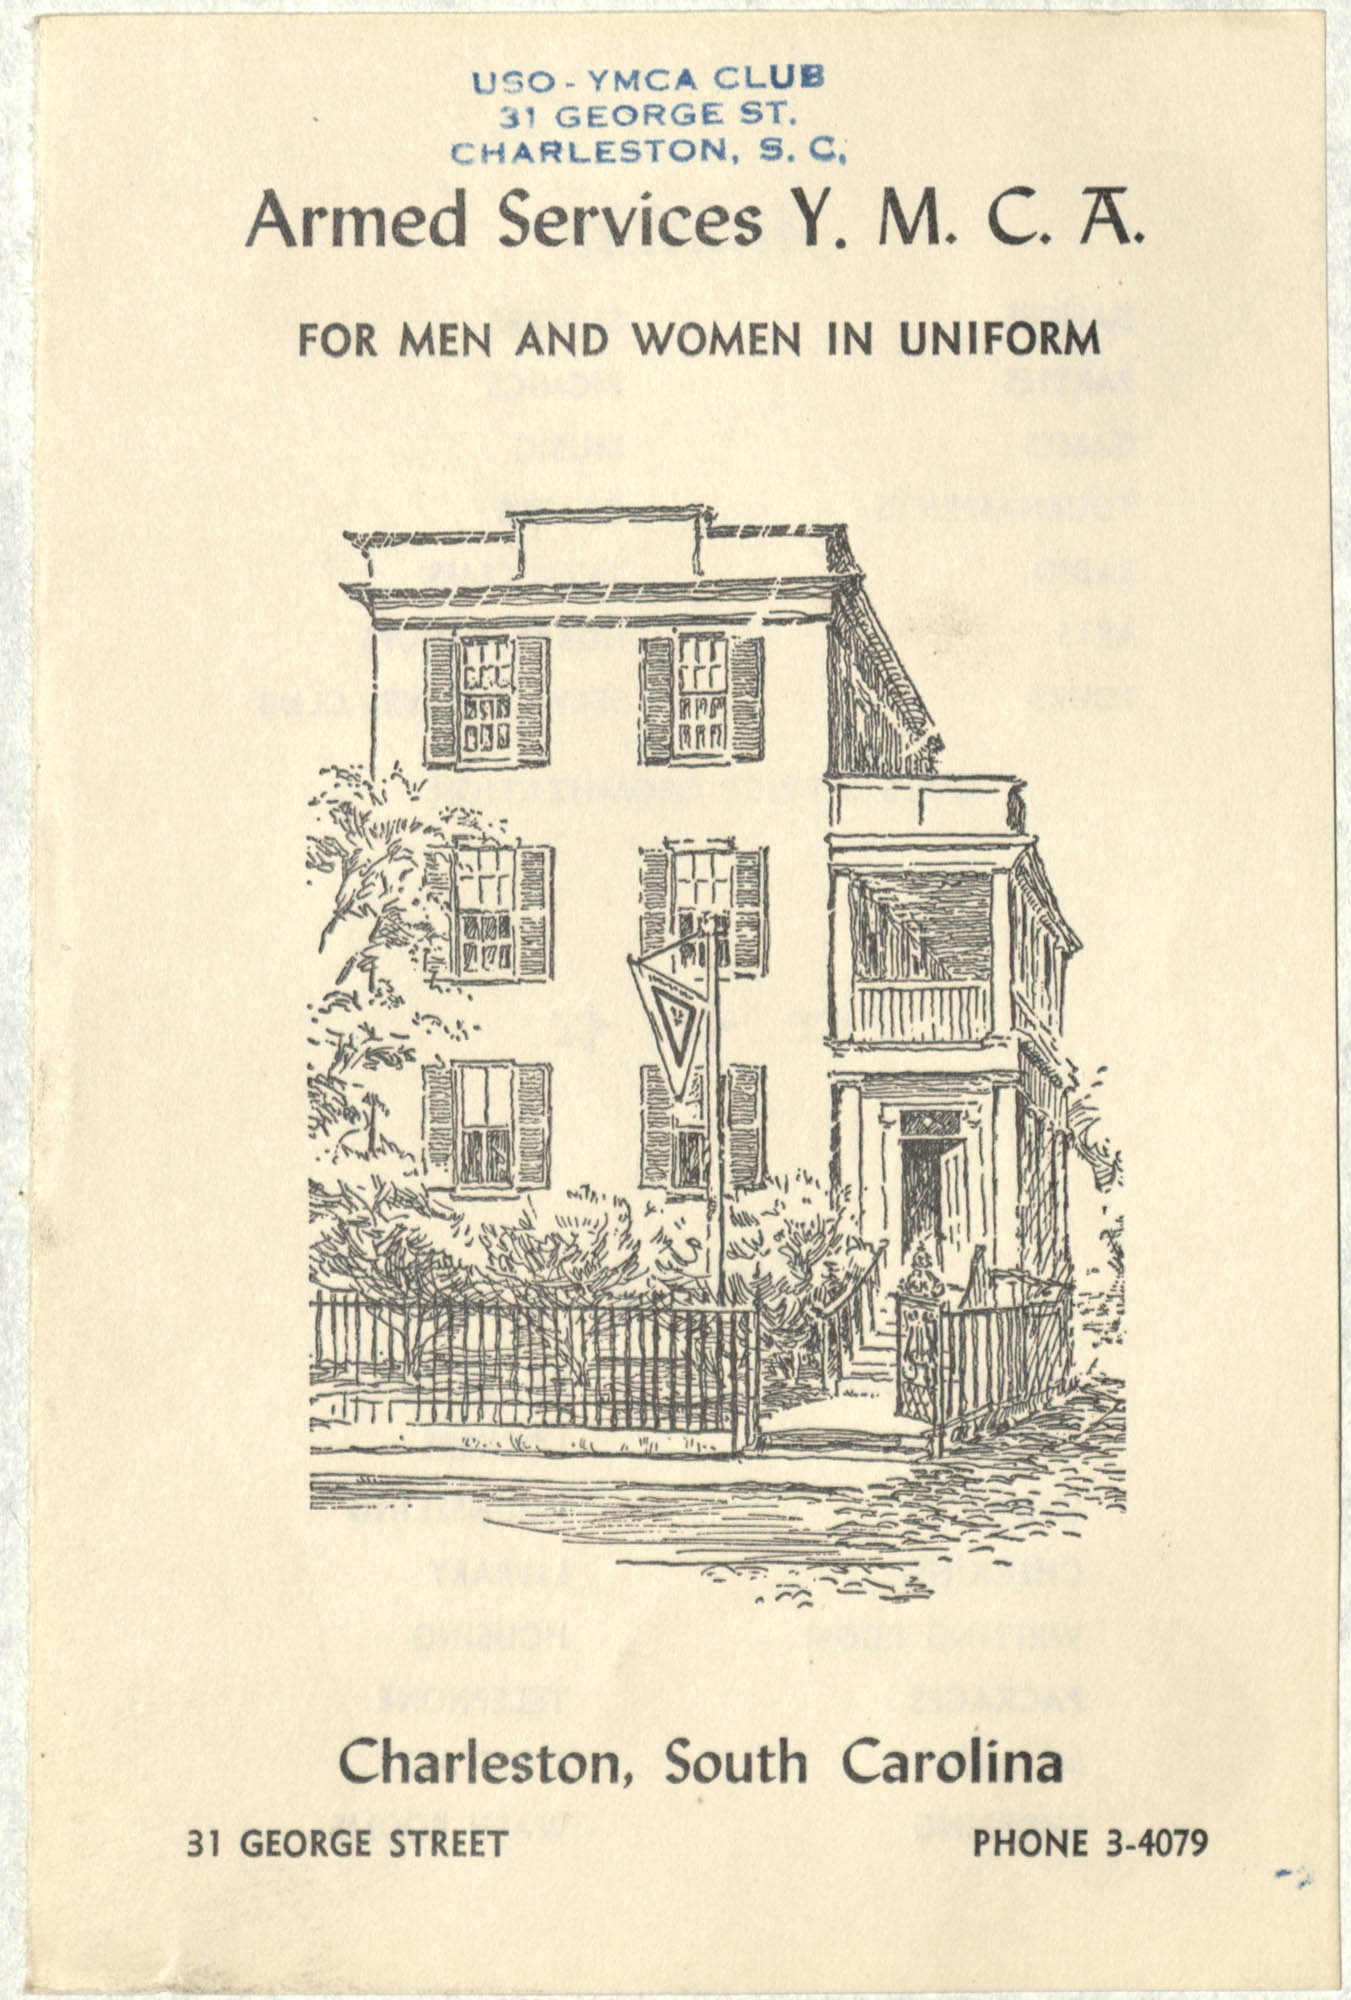 Armed Services Y. M. C. A. For Men and Women in Uniform, Charleston South Carolina, 31 George Street